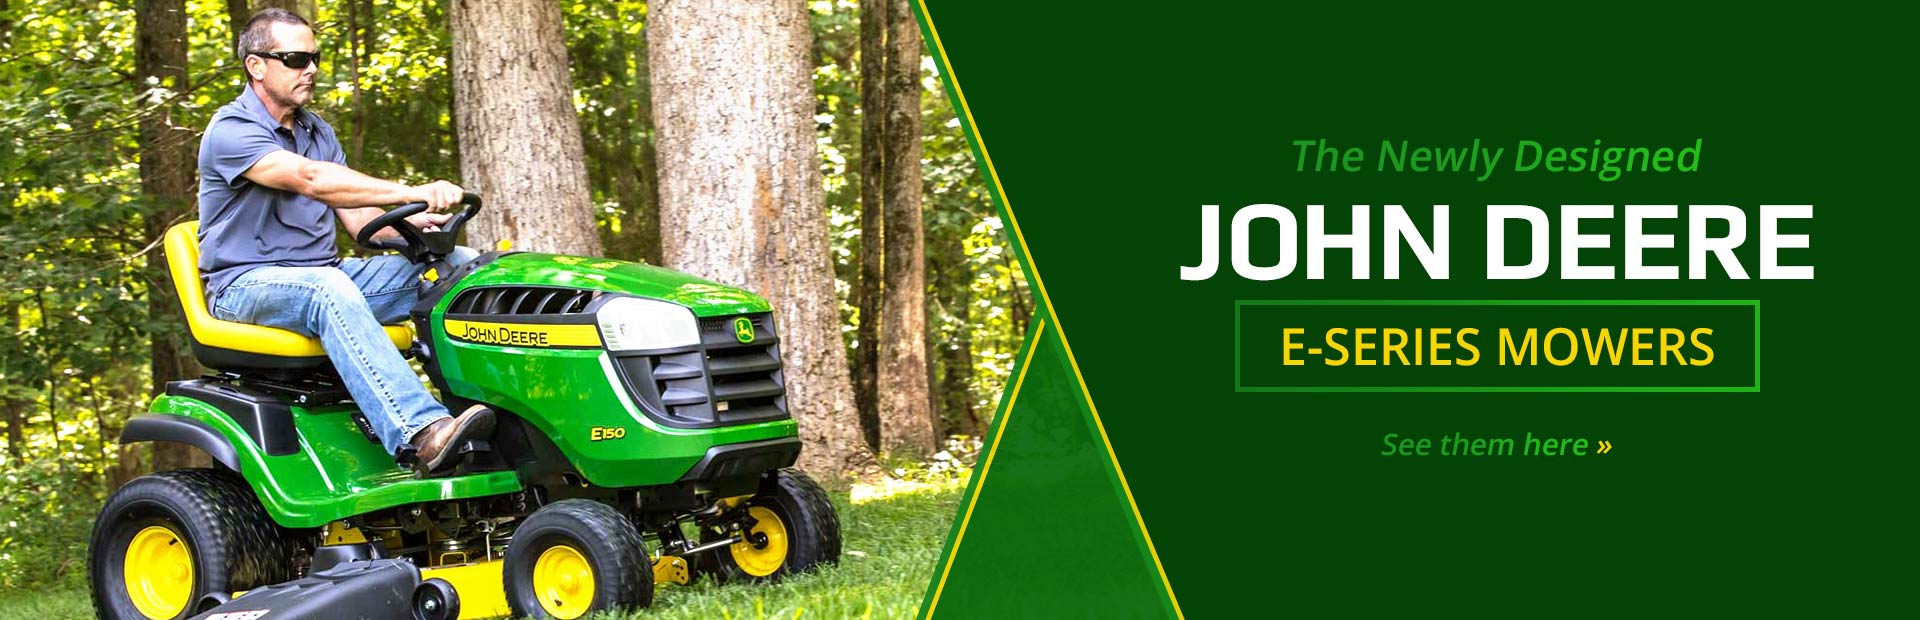 Newly Designed John Deere E-Series Mowers: Click here to view the models.